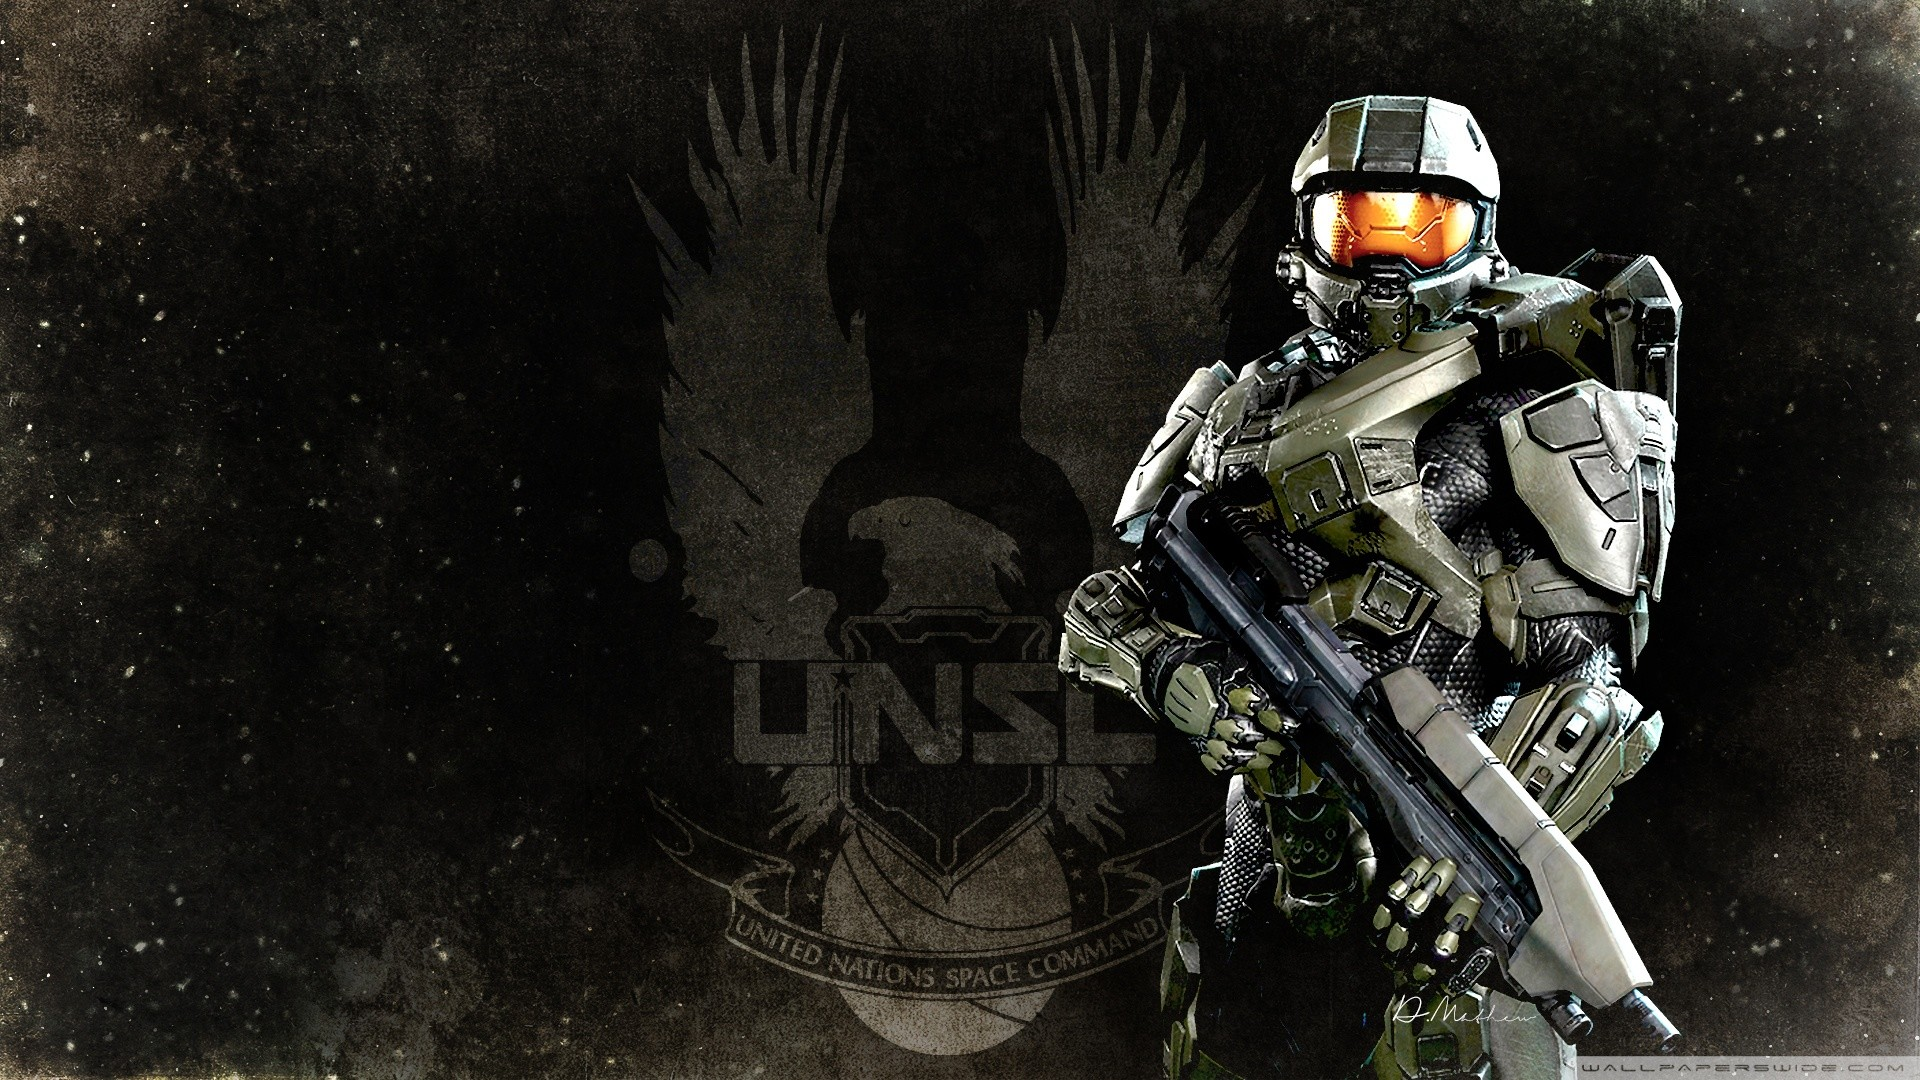 1920x1080 ... Halo 3, Master Chief, Video Games Wallpapers HD / Desktop .